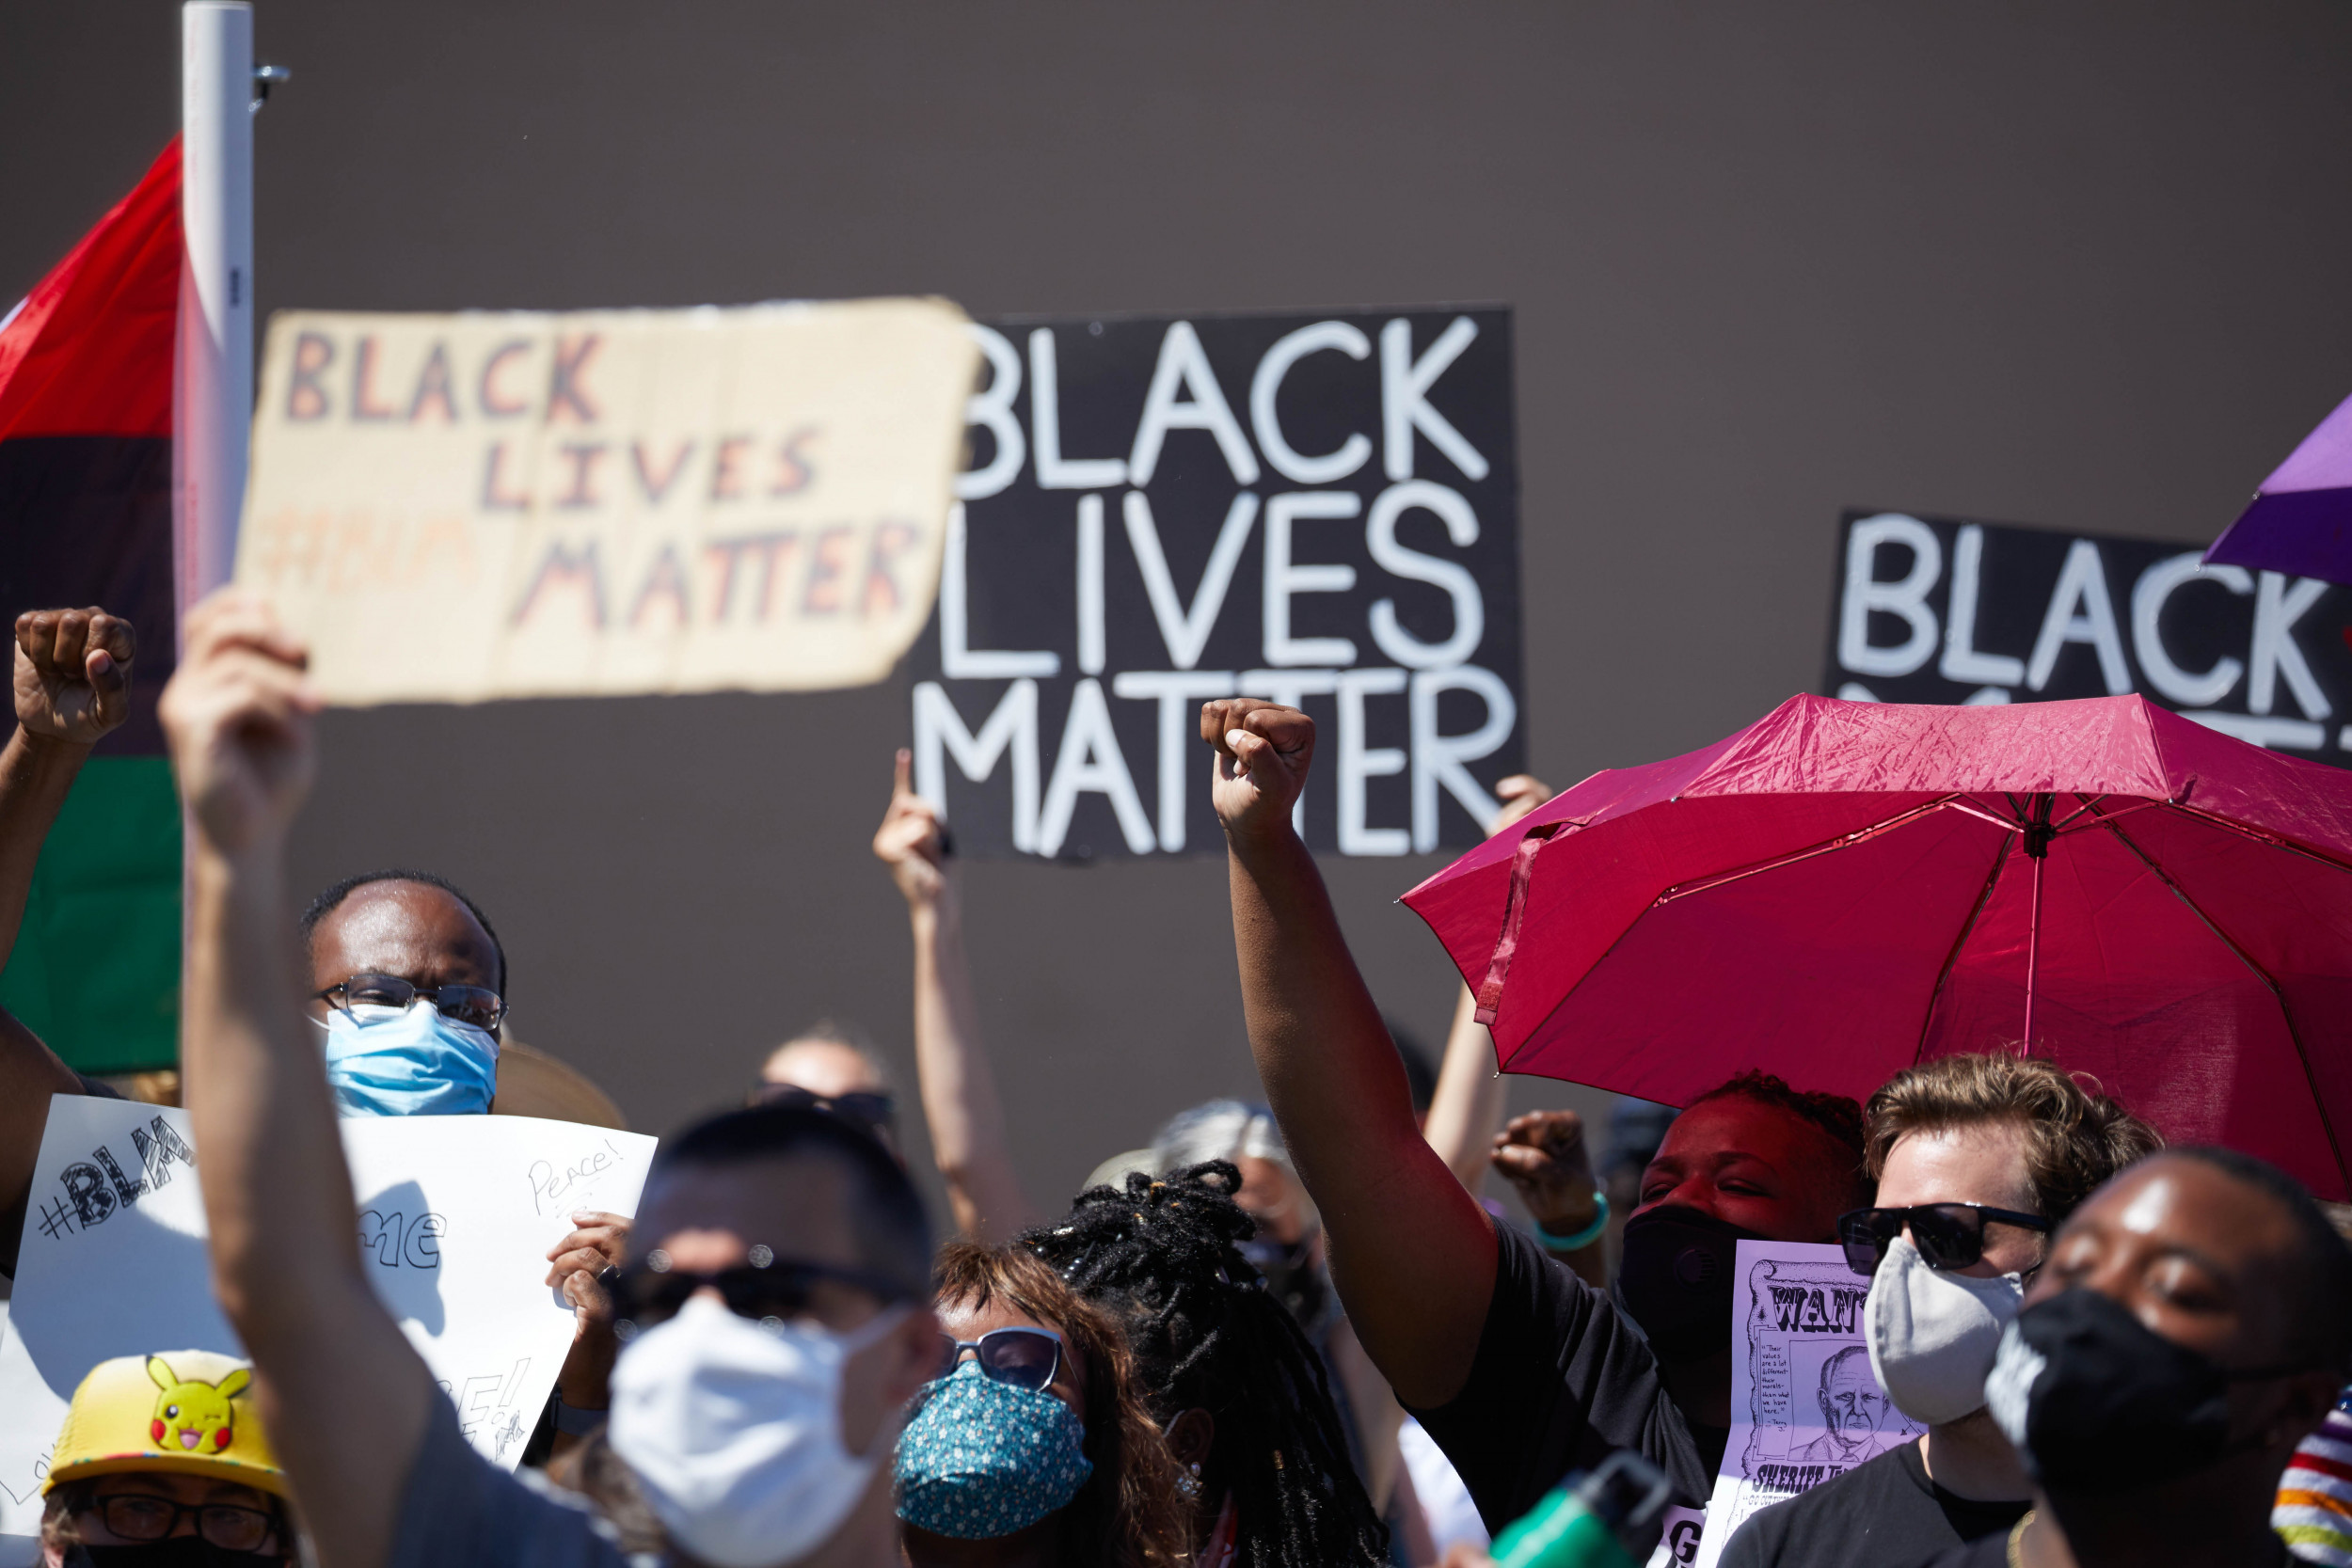 Sheriff Settles Lawsuit Against BLM Protesters Arrested for Cursing